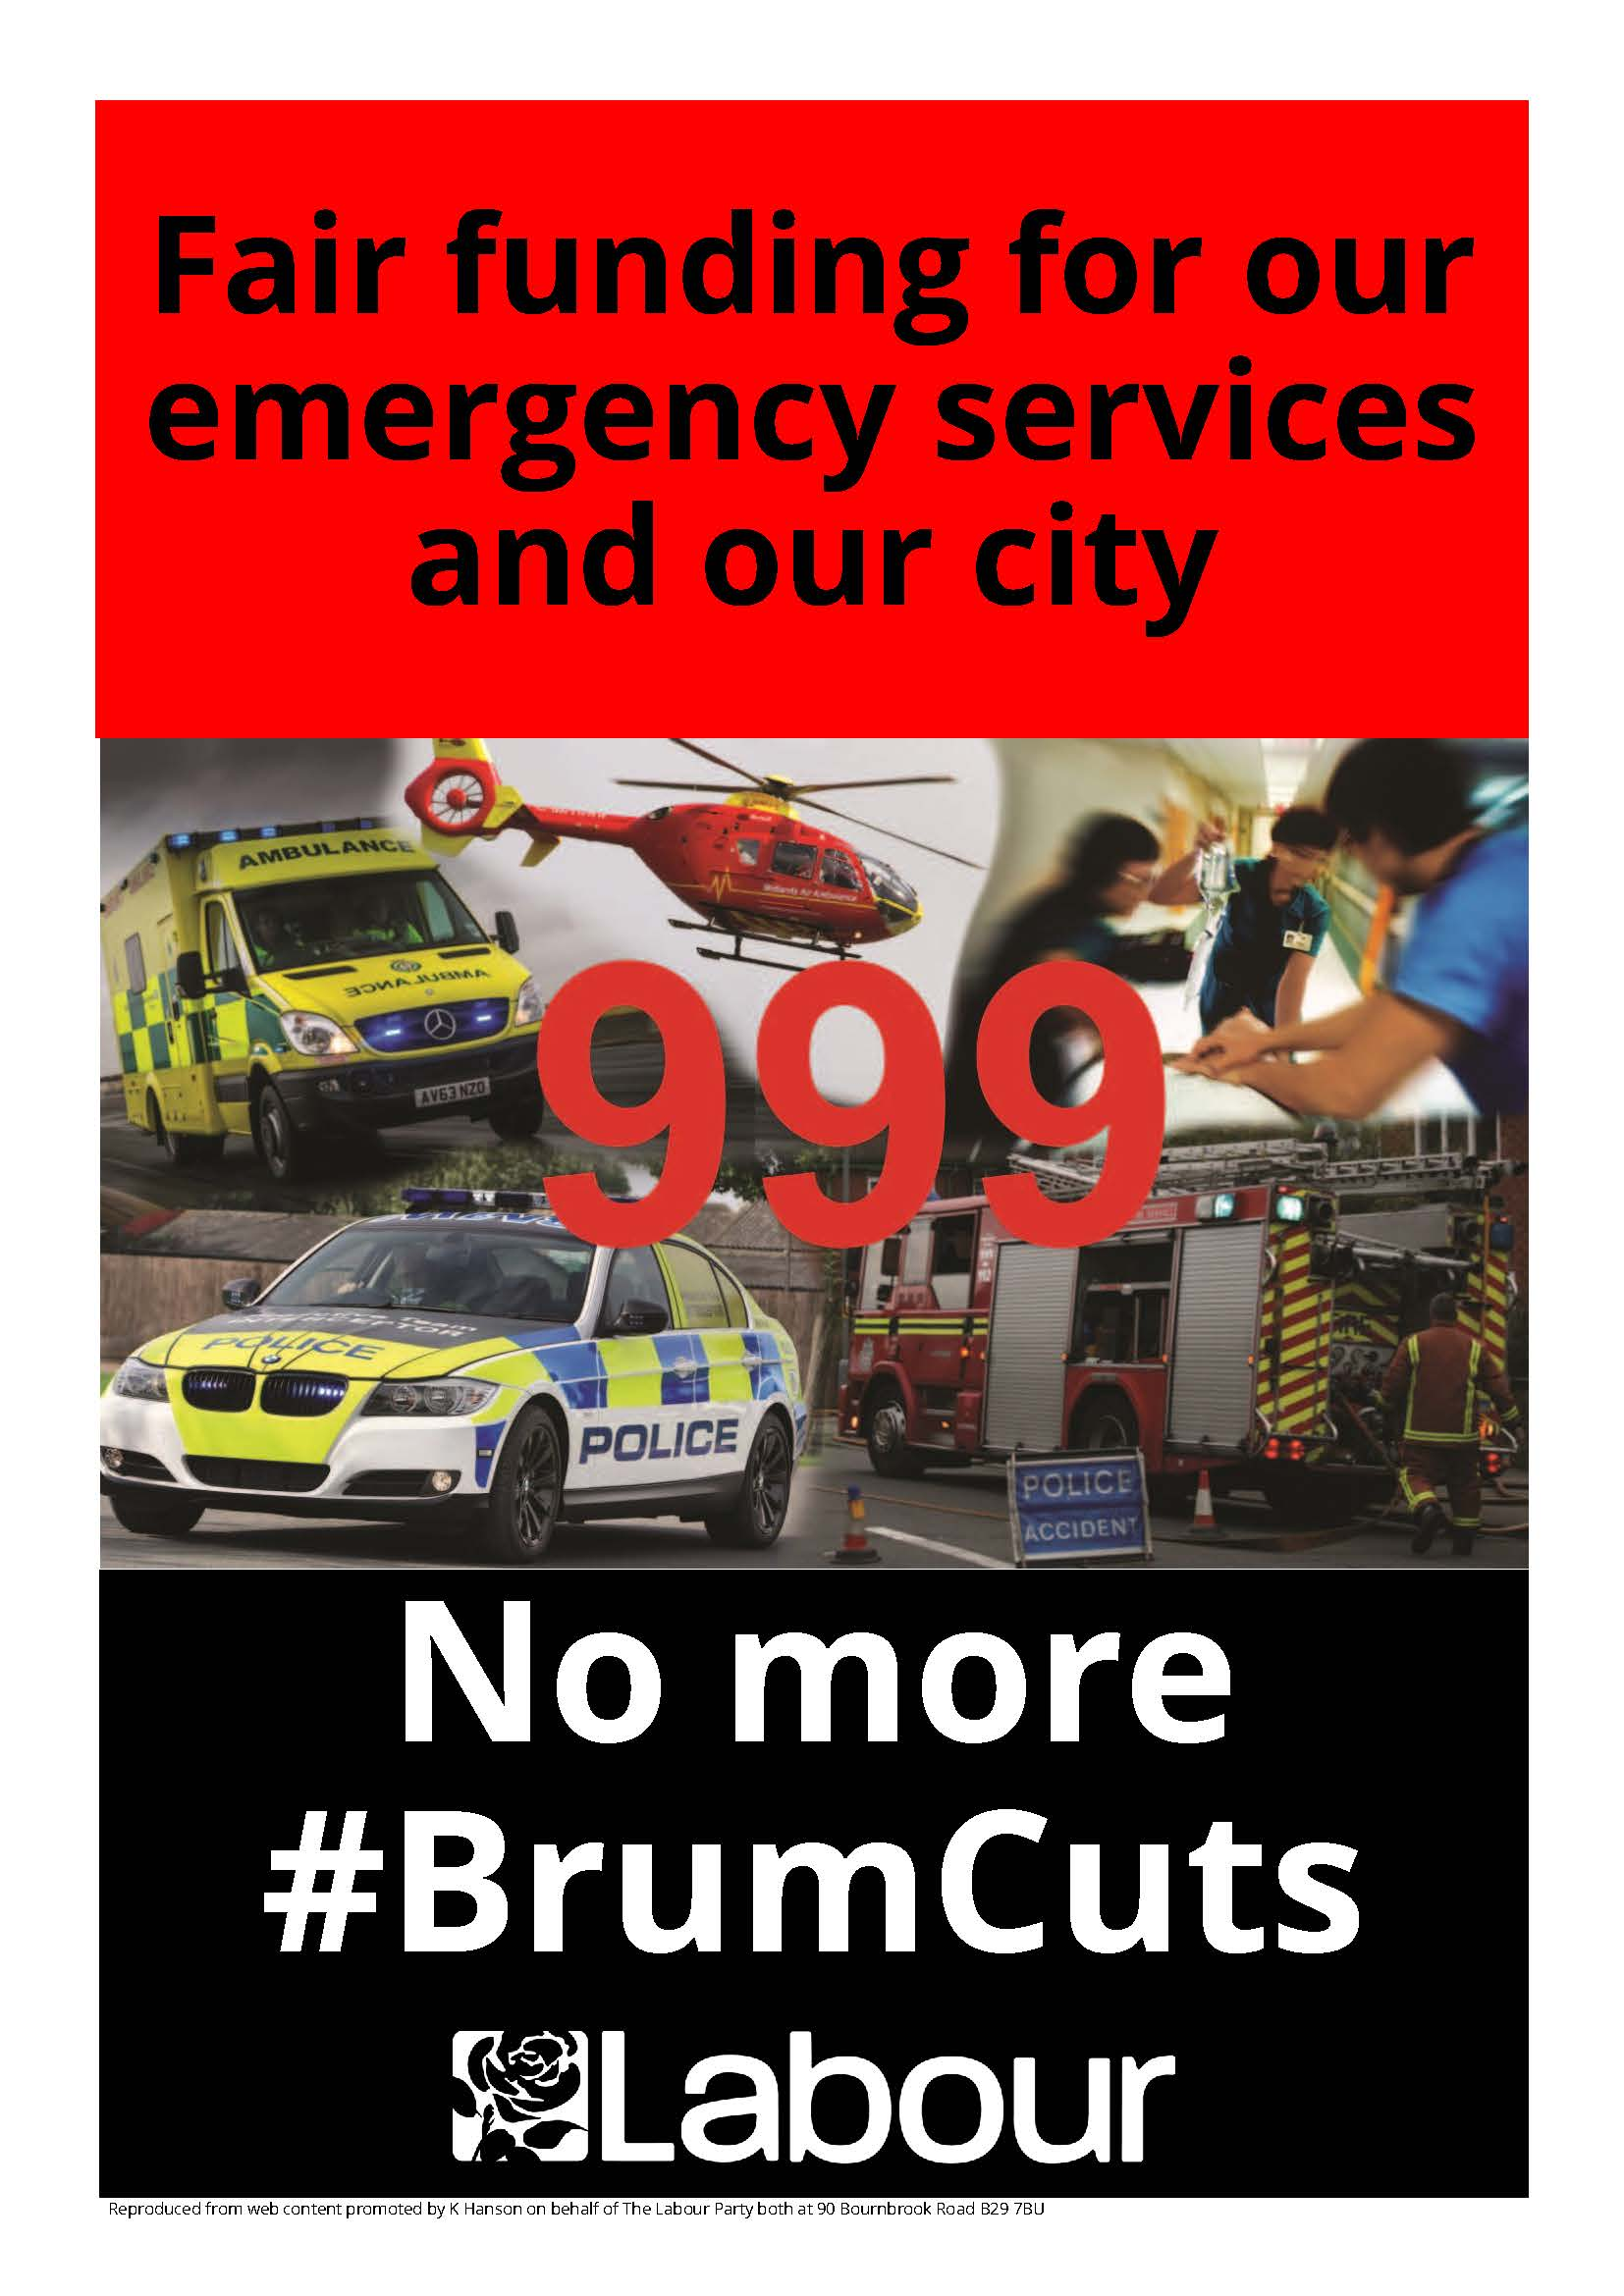 999_No_More_Brum_Cuts.jpg